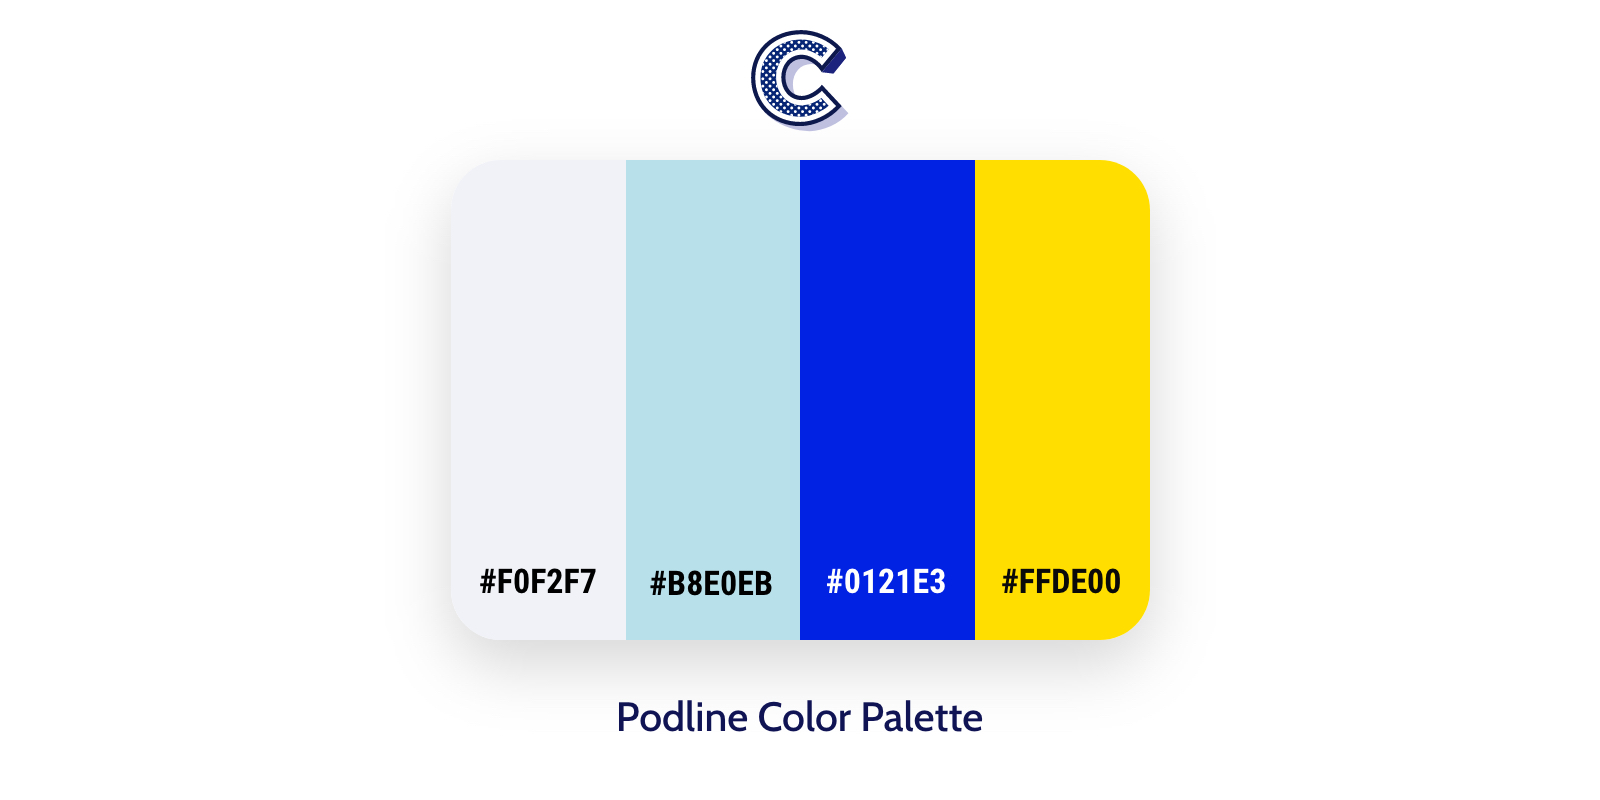 the featured image of podline color palette